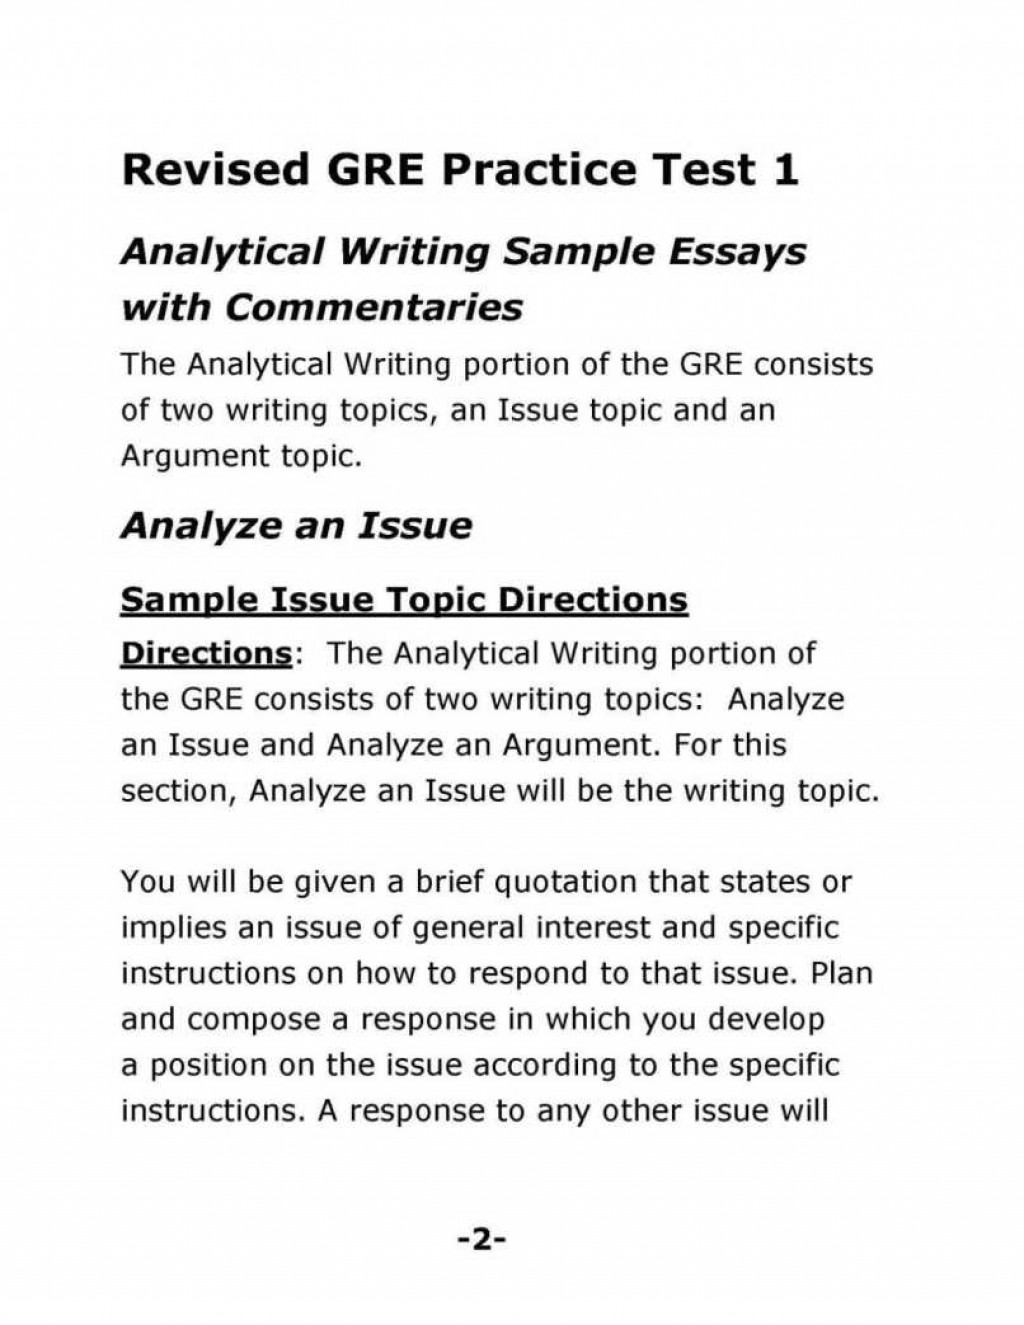 007 How To Write Gre Argument Essay Formatted Resume Example Sample Test Papers With Soluti Good Essays Great Issue Perfect Analytical Writing Unique Topics Practice Prompts Large